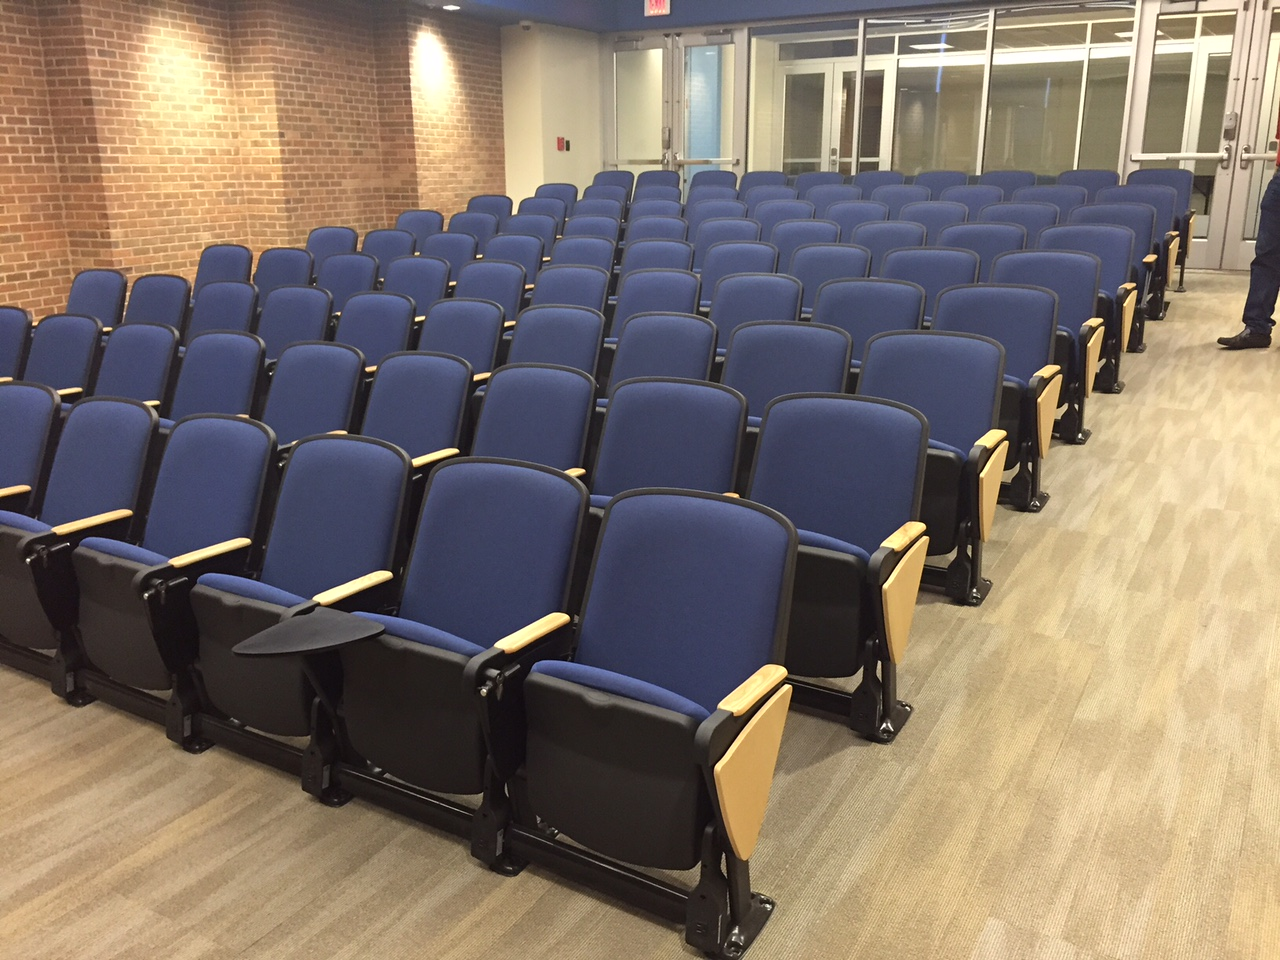 mauritius auditorium design case study Request your free trial today essential for today's engineering professionals.